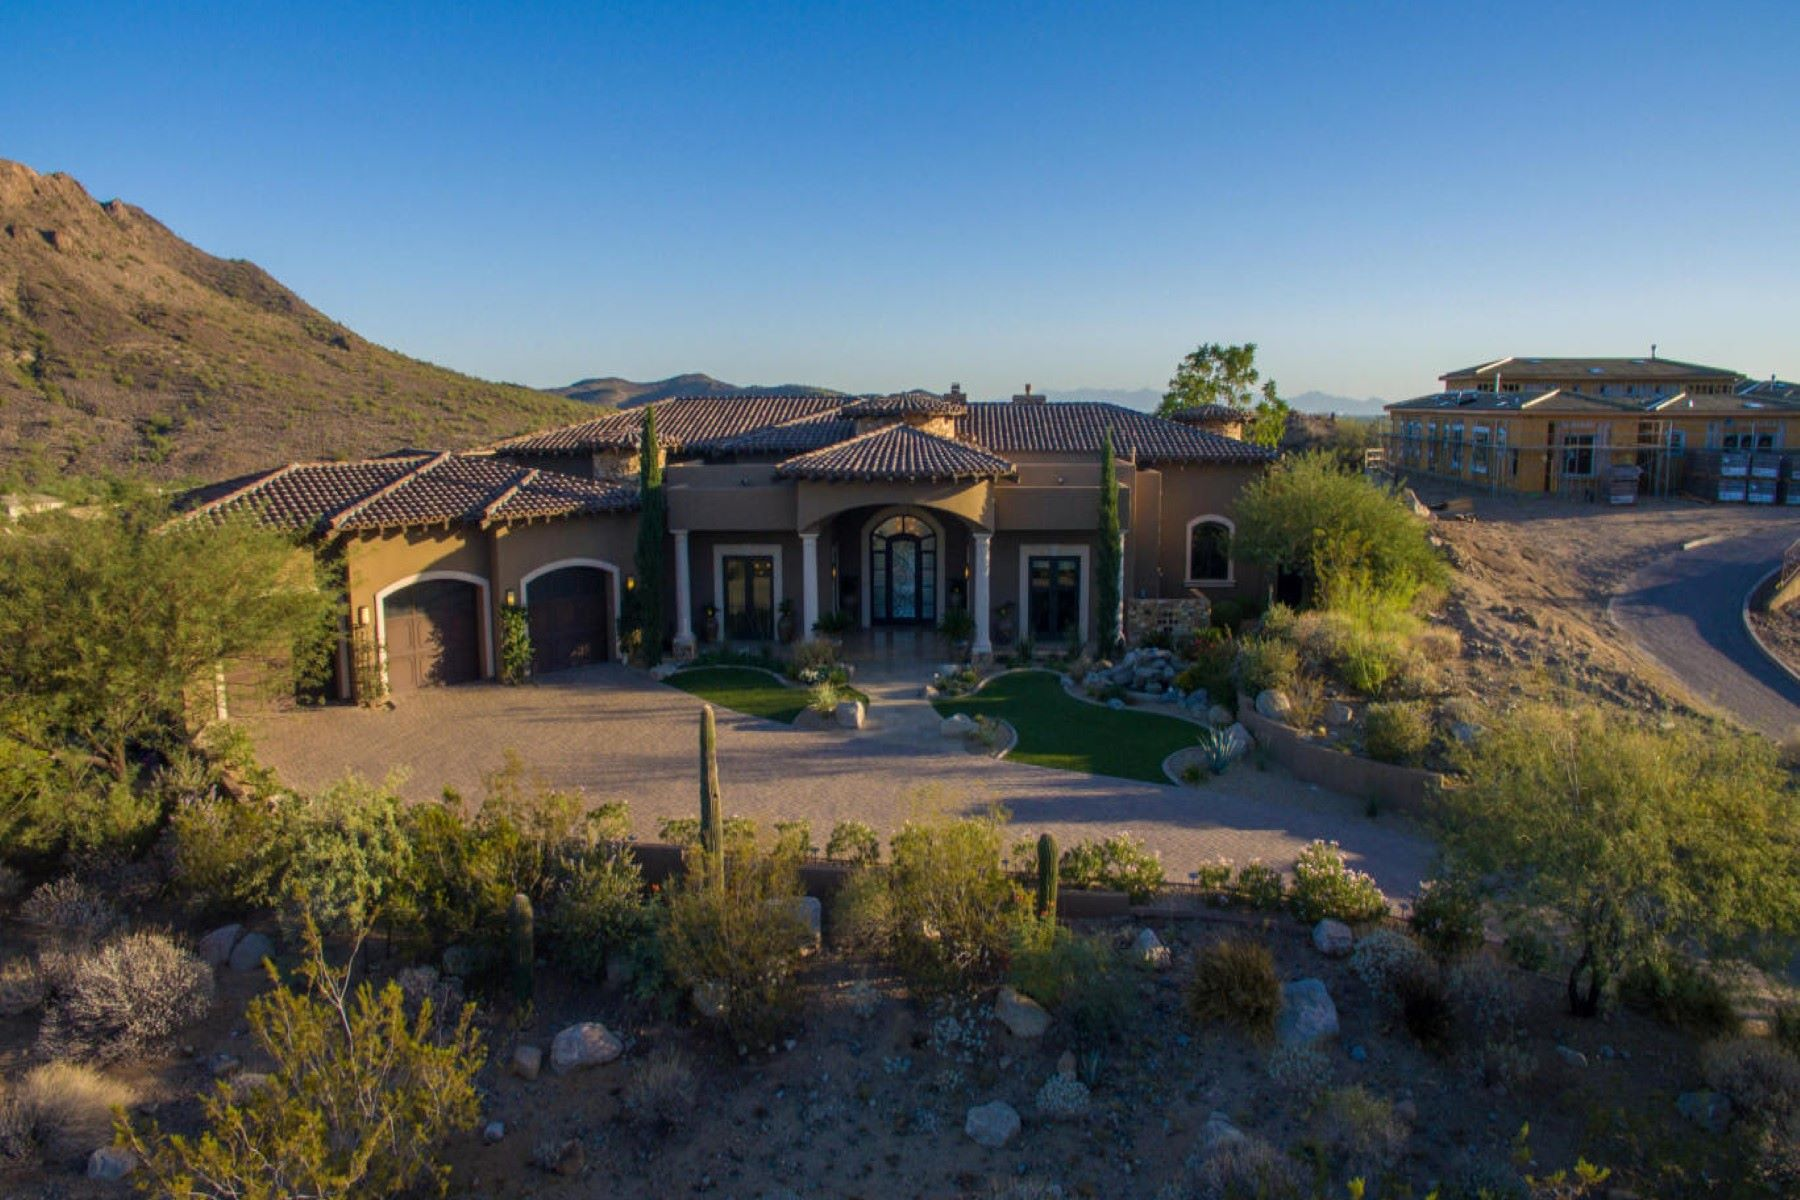 Casa Unifamiliar por un Venta en Spectacular Home on 1.4 Acres in Gold Mountain Preserve 6531 W Gold Mountain Pass Phoenix, Arizona, 85083 Estados Unidos